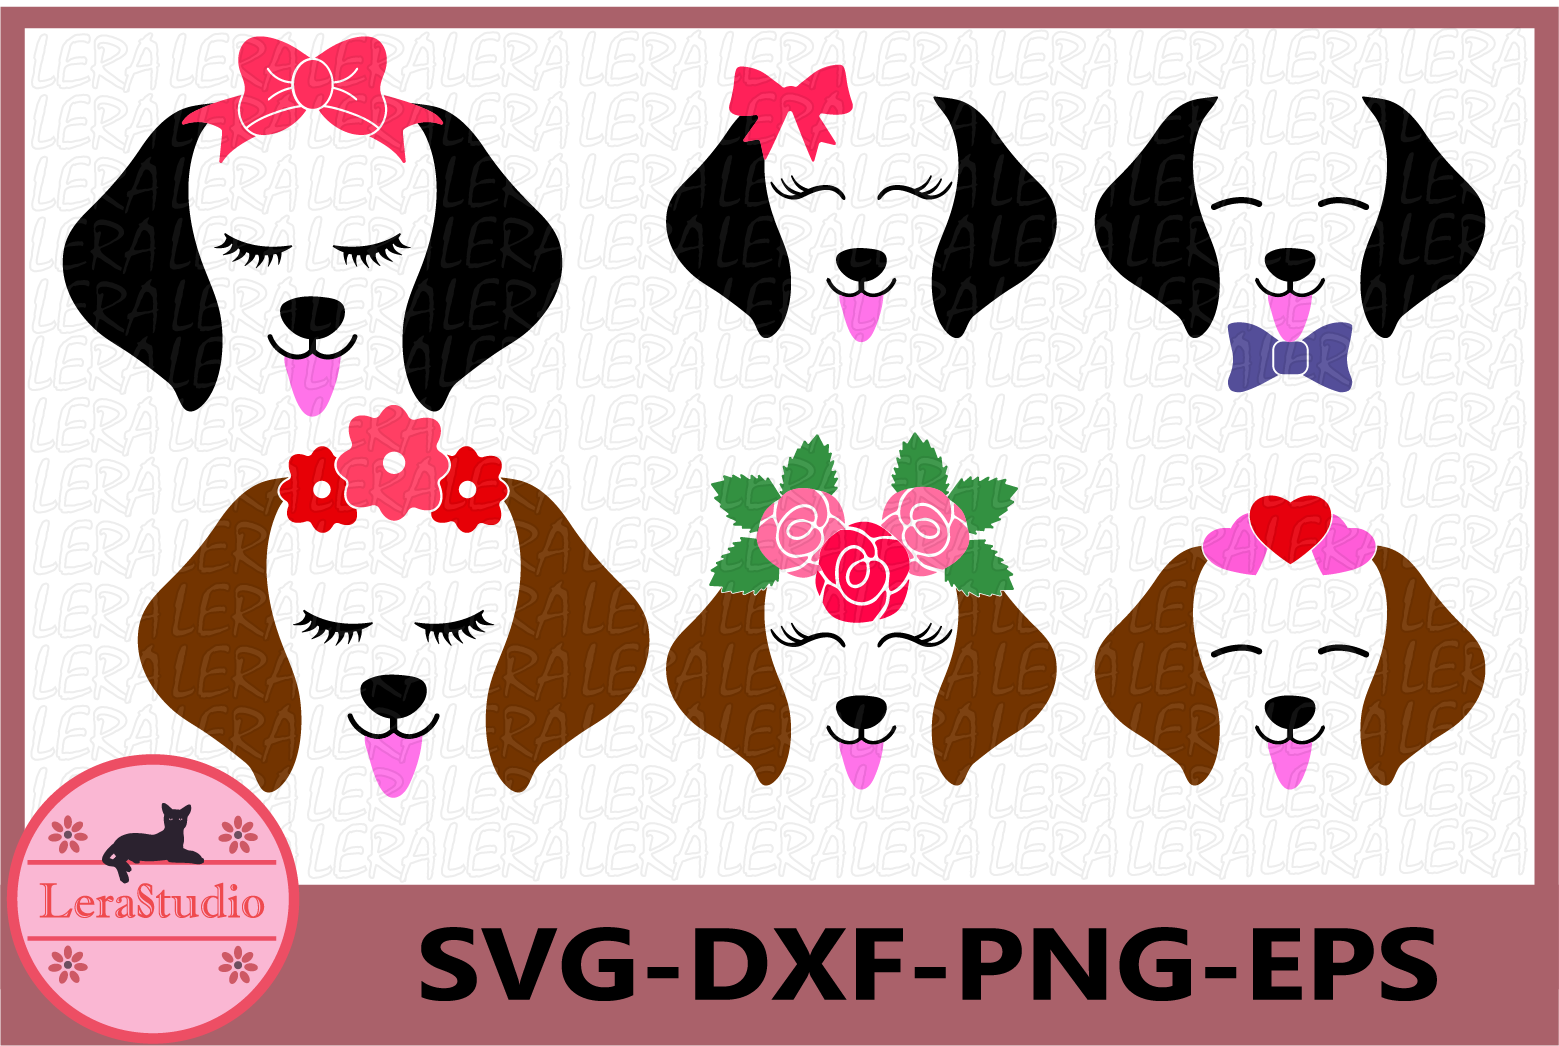 Dog SVG, Puppy Svg, Dog Face Svg, Dog svg, eps, png, dxf example image 1